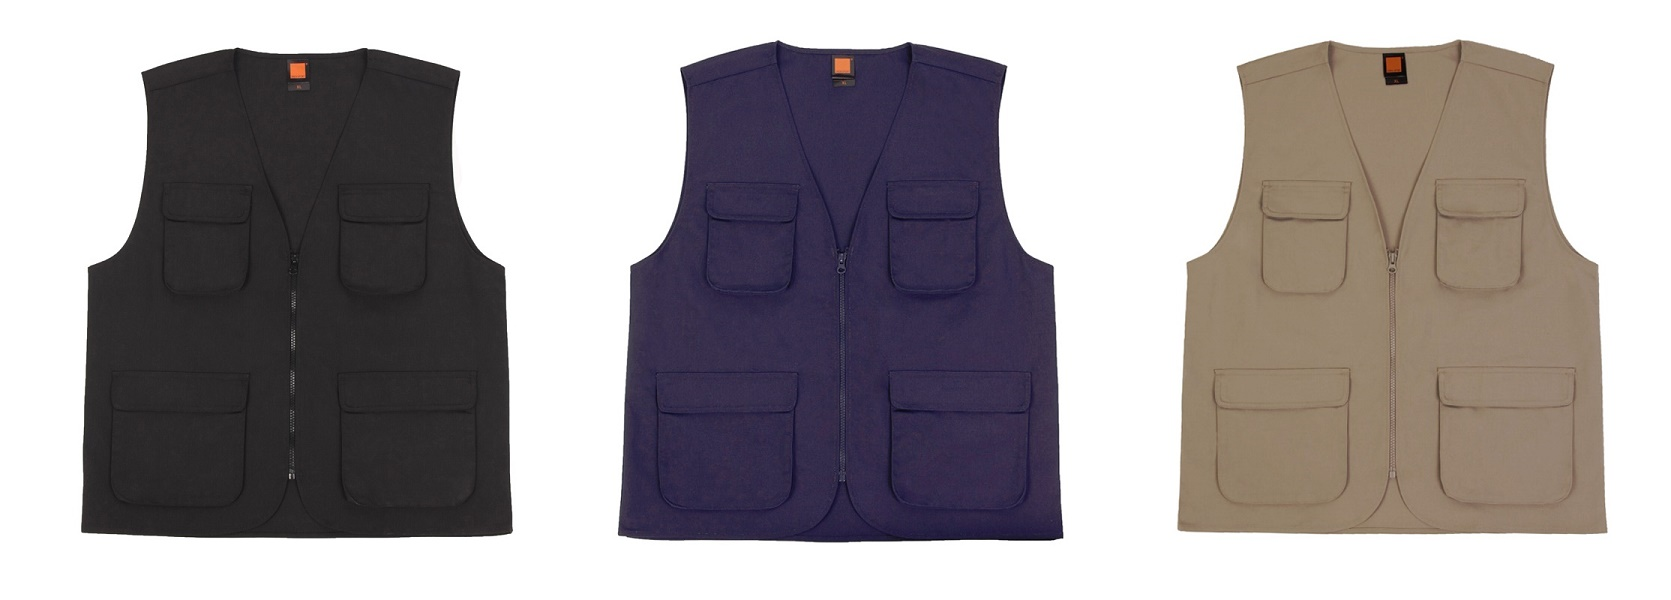 Corporate Apparel Sleeveless Vest Navy Blue Black Khaki MOQ 10 Units